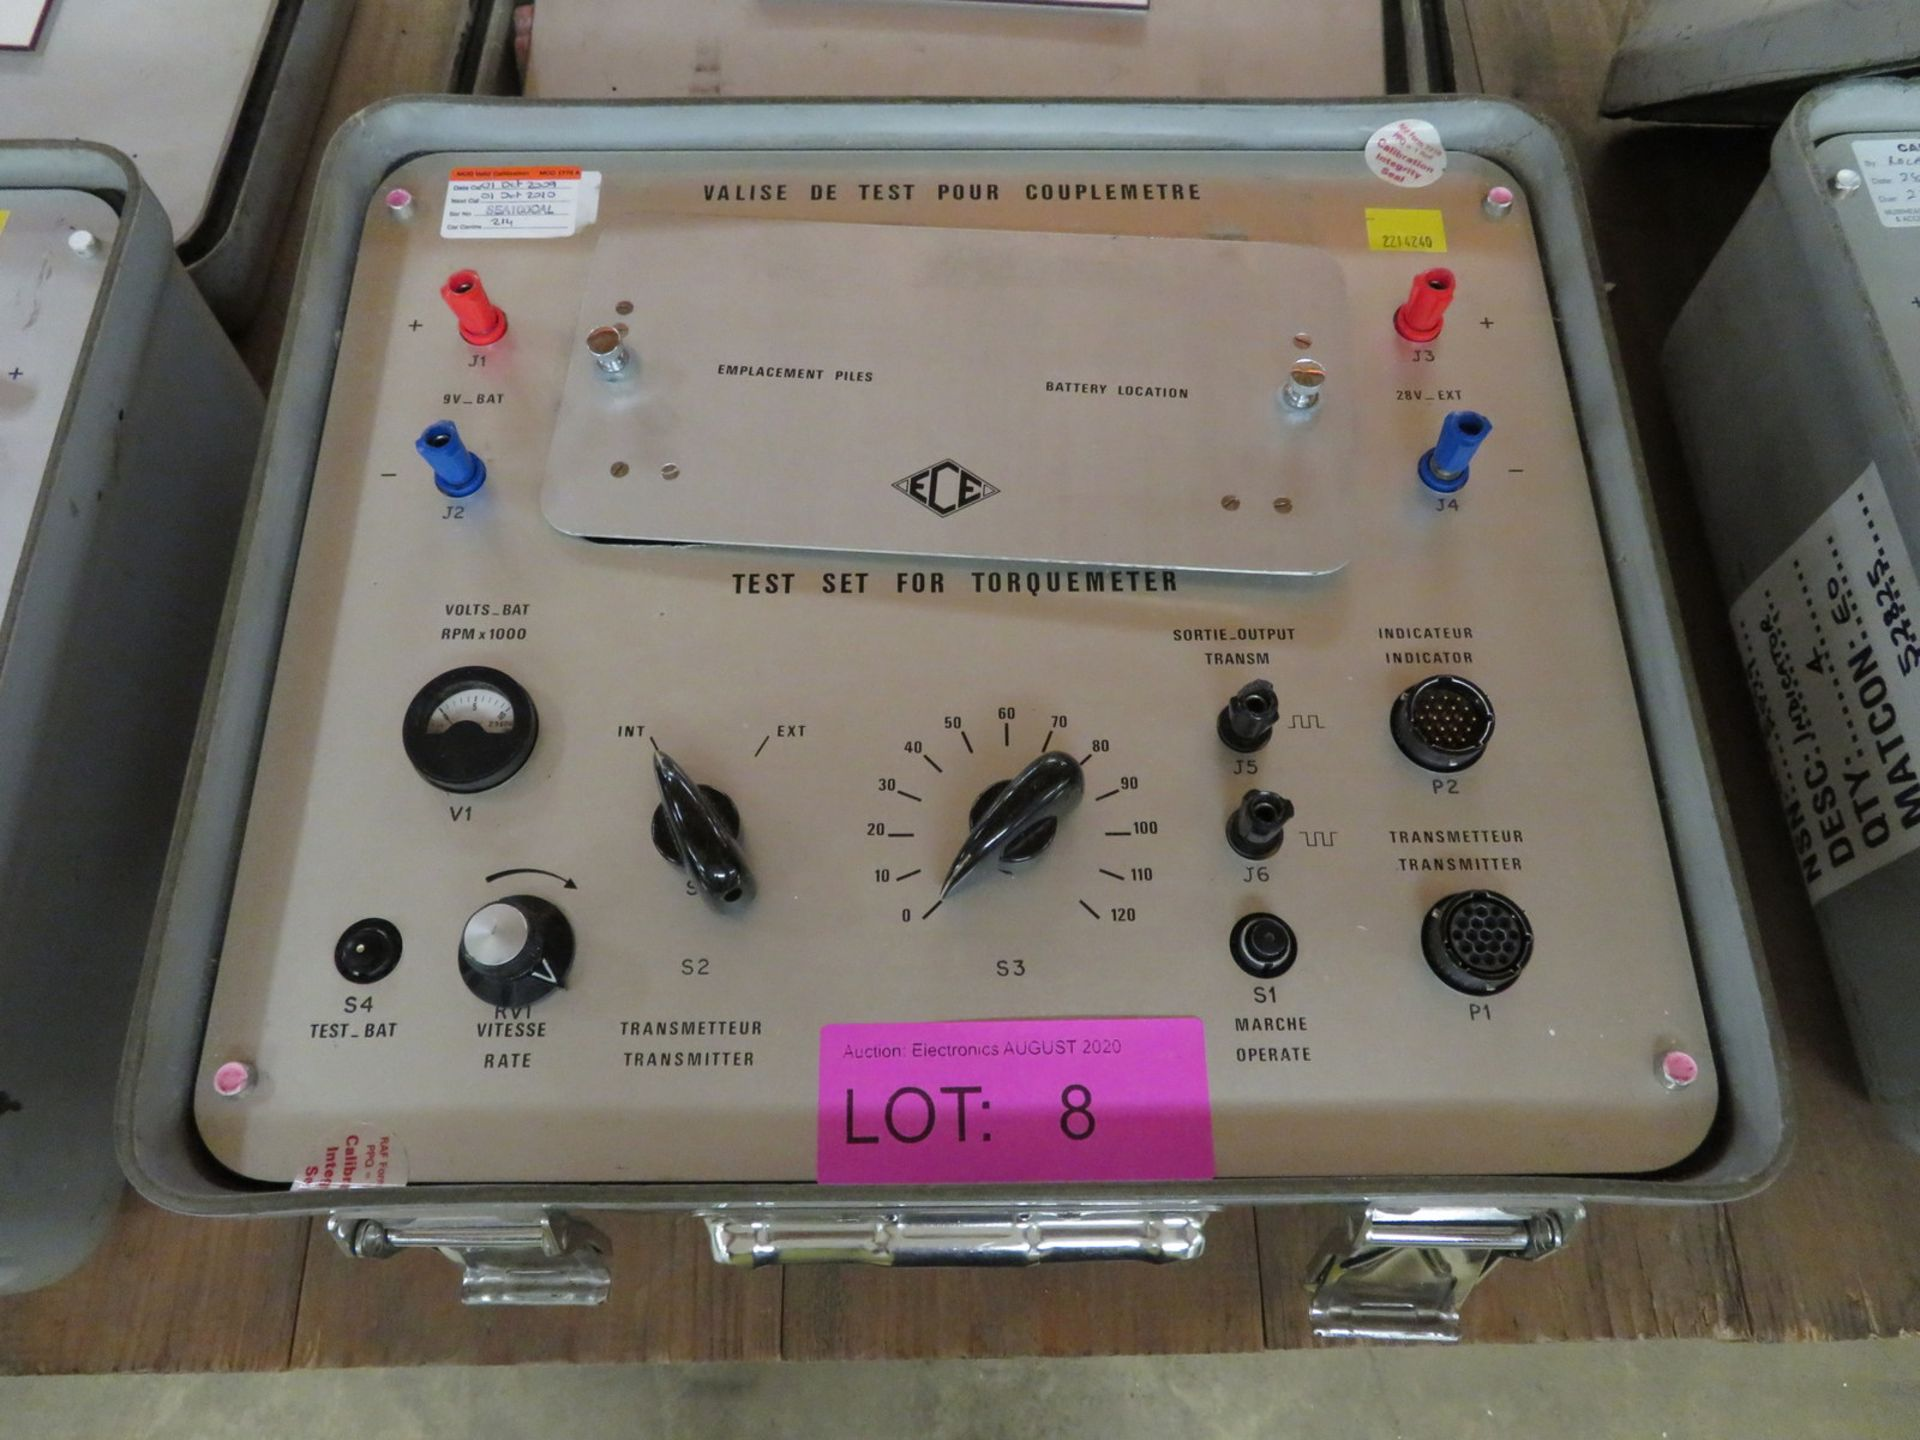 Lot 8 - Test Set for Torquemeter